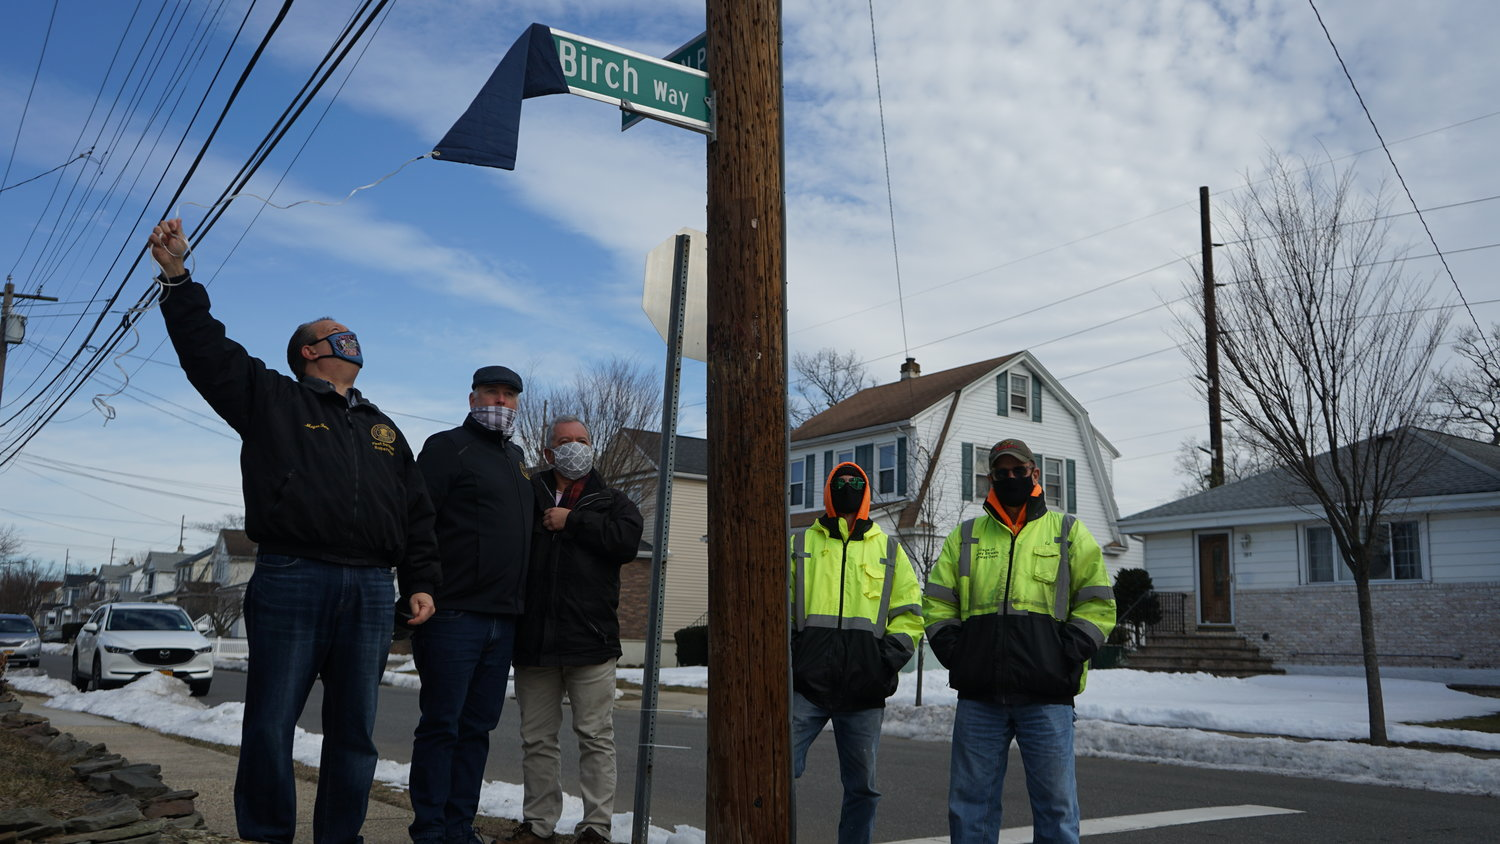 Mayor Ed Fare, from left, Tom McAleer director of community and economic development, neighbor Frank Palacios and village DPW workers unveiled the street sign for the newly renamed Birch Way.